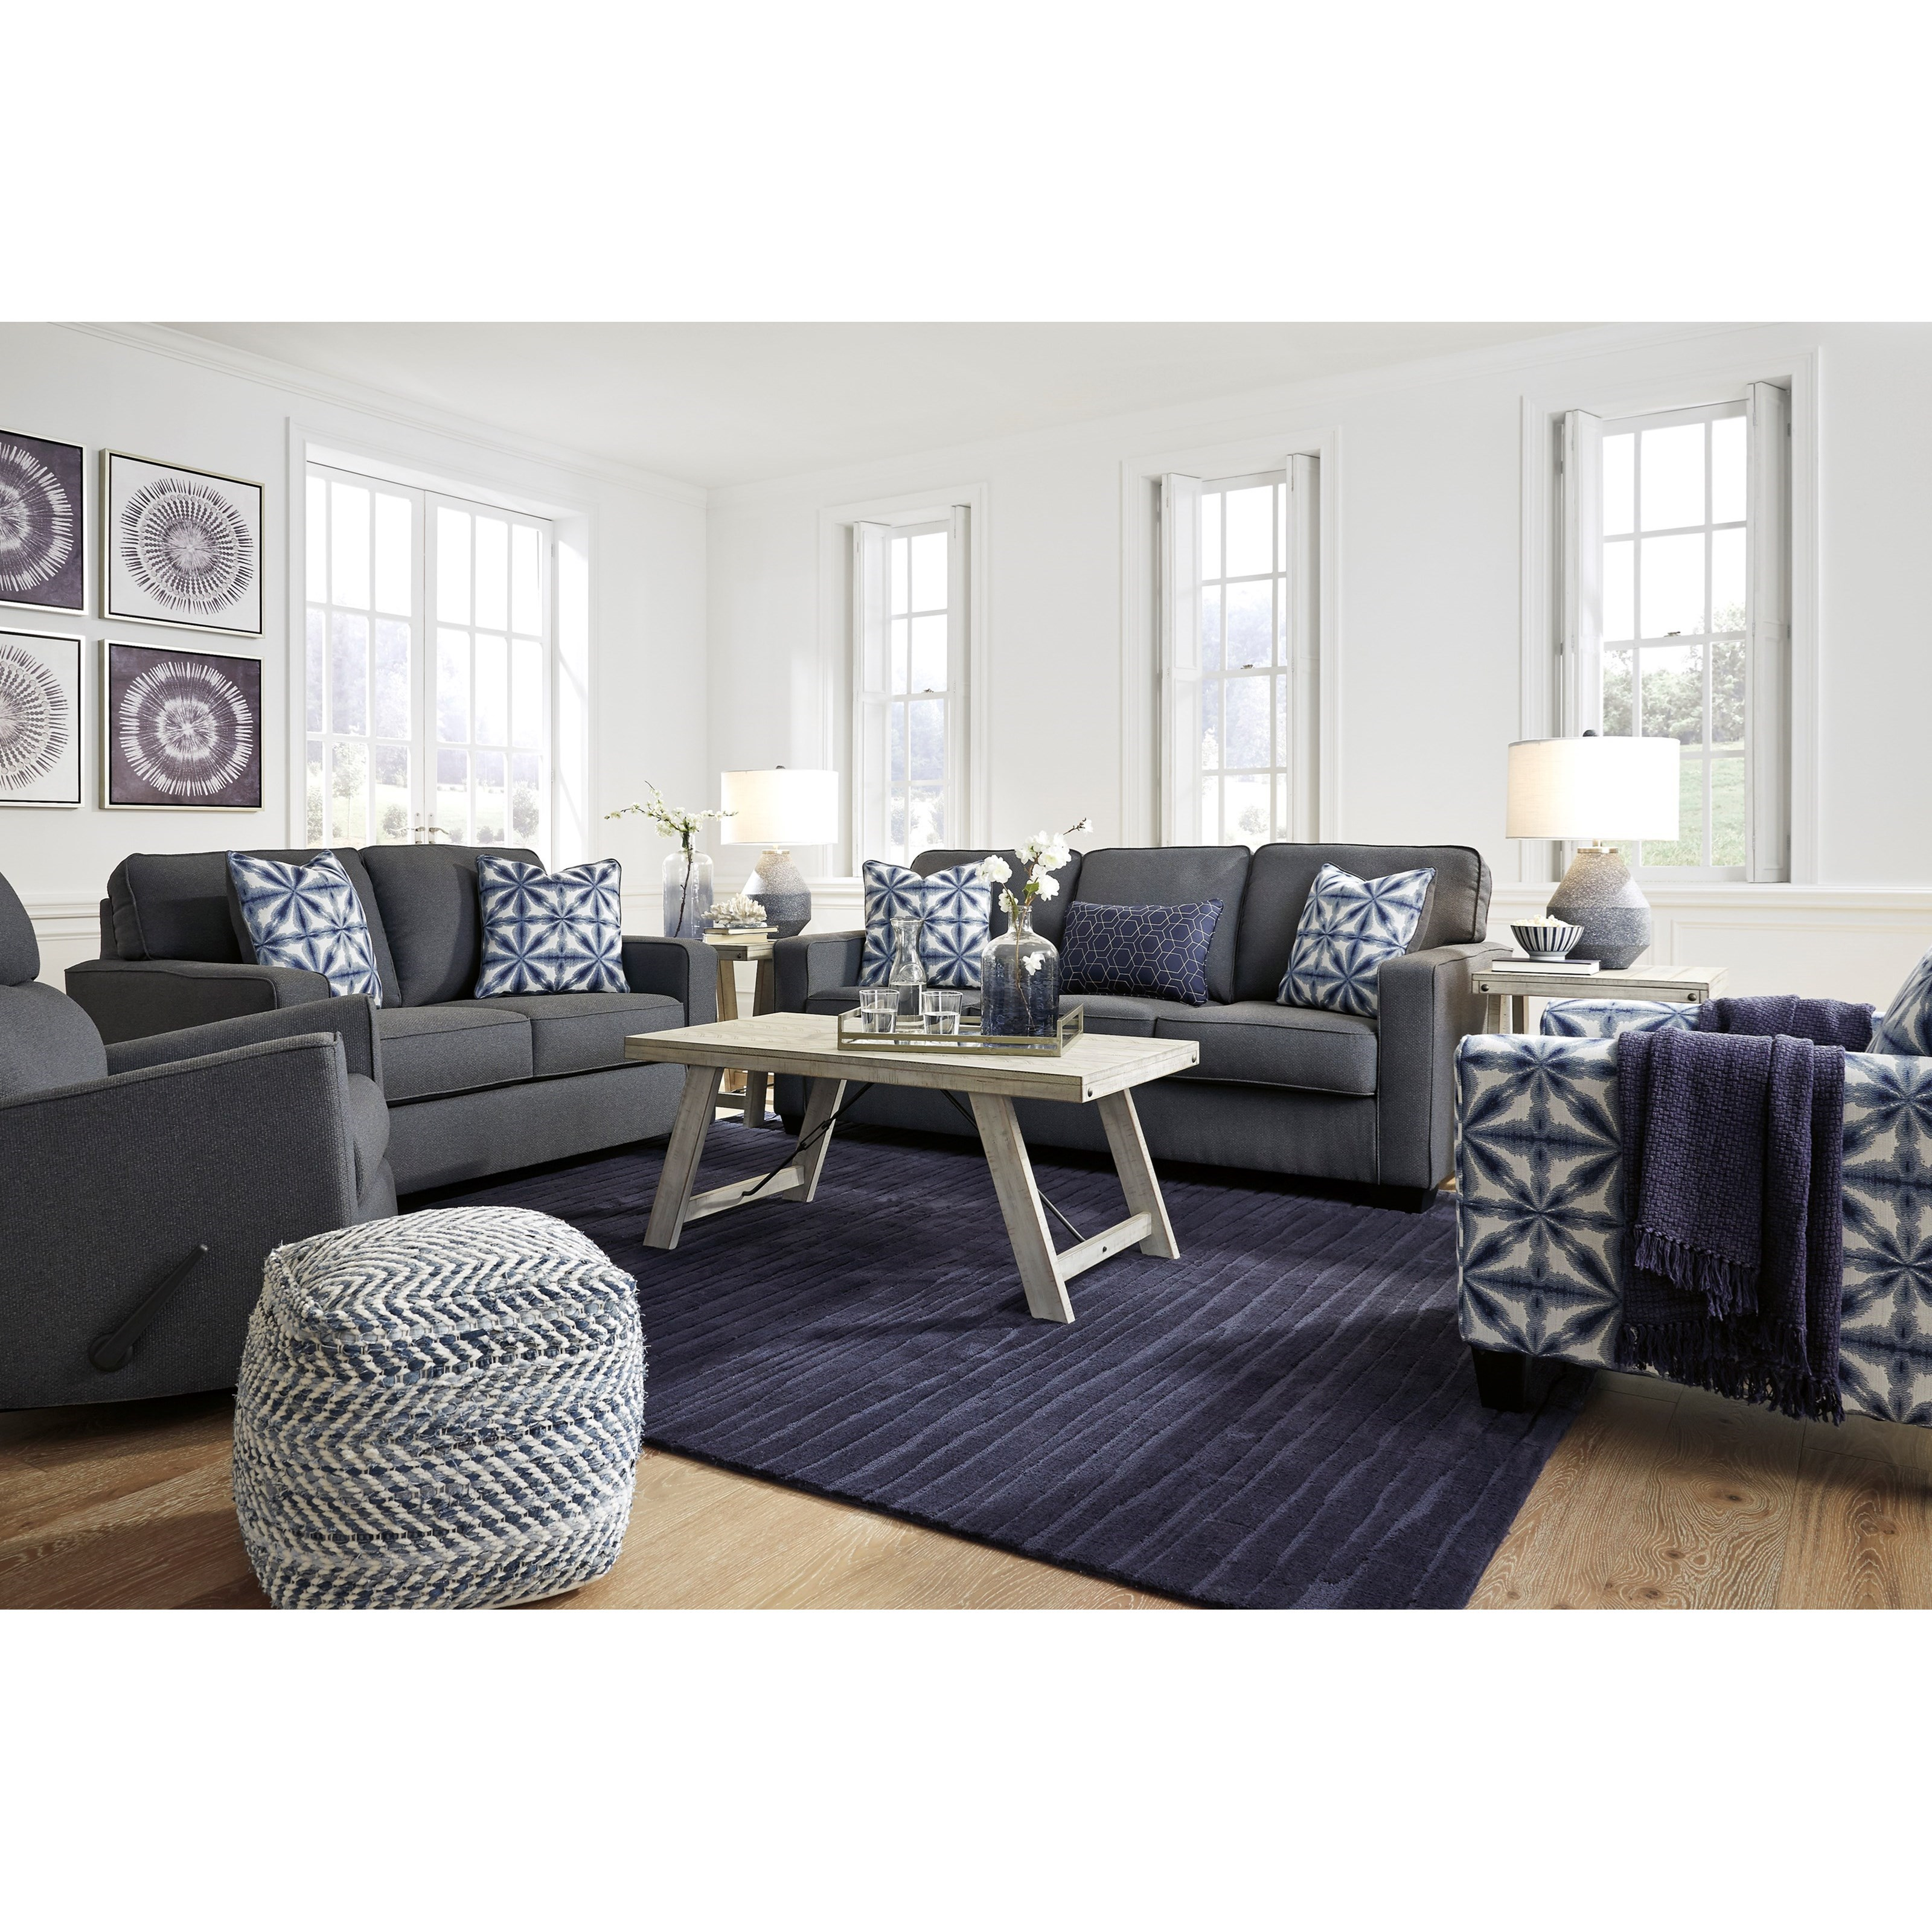 Kiessel Nuvella Living Room Group by Benchcraft at Northeast Factory Direct